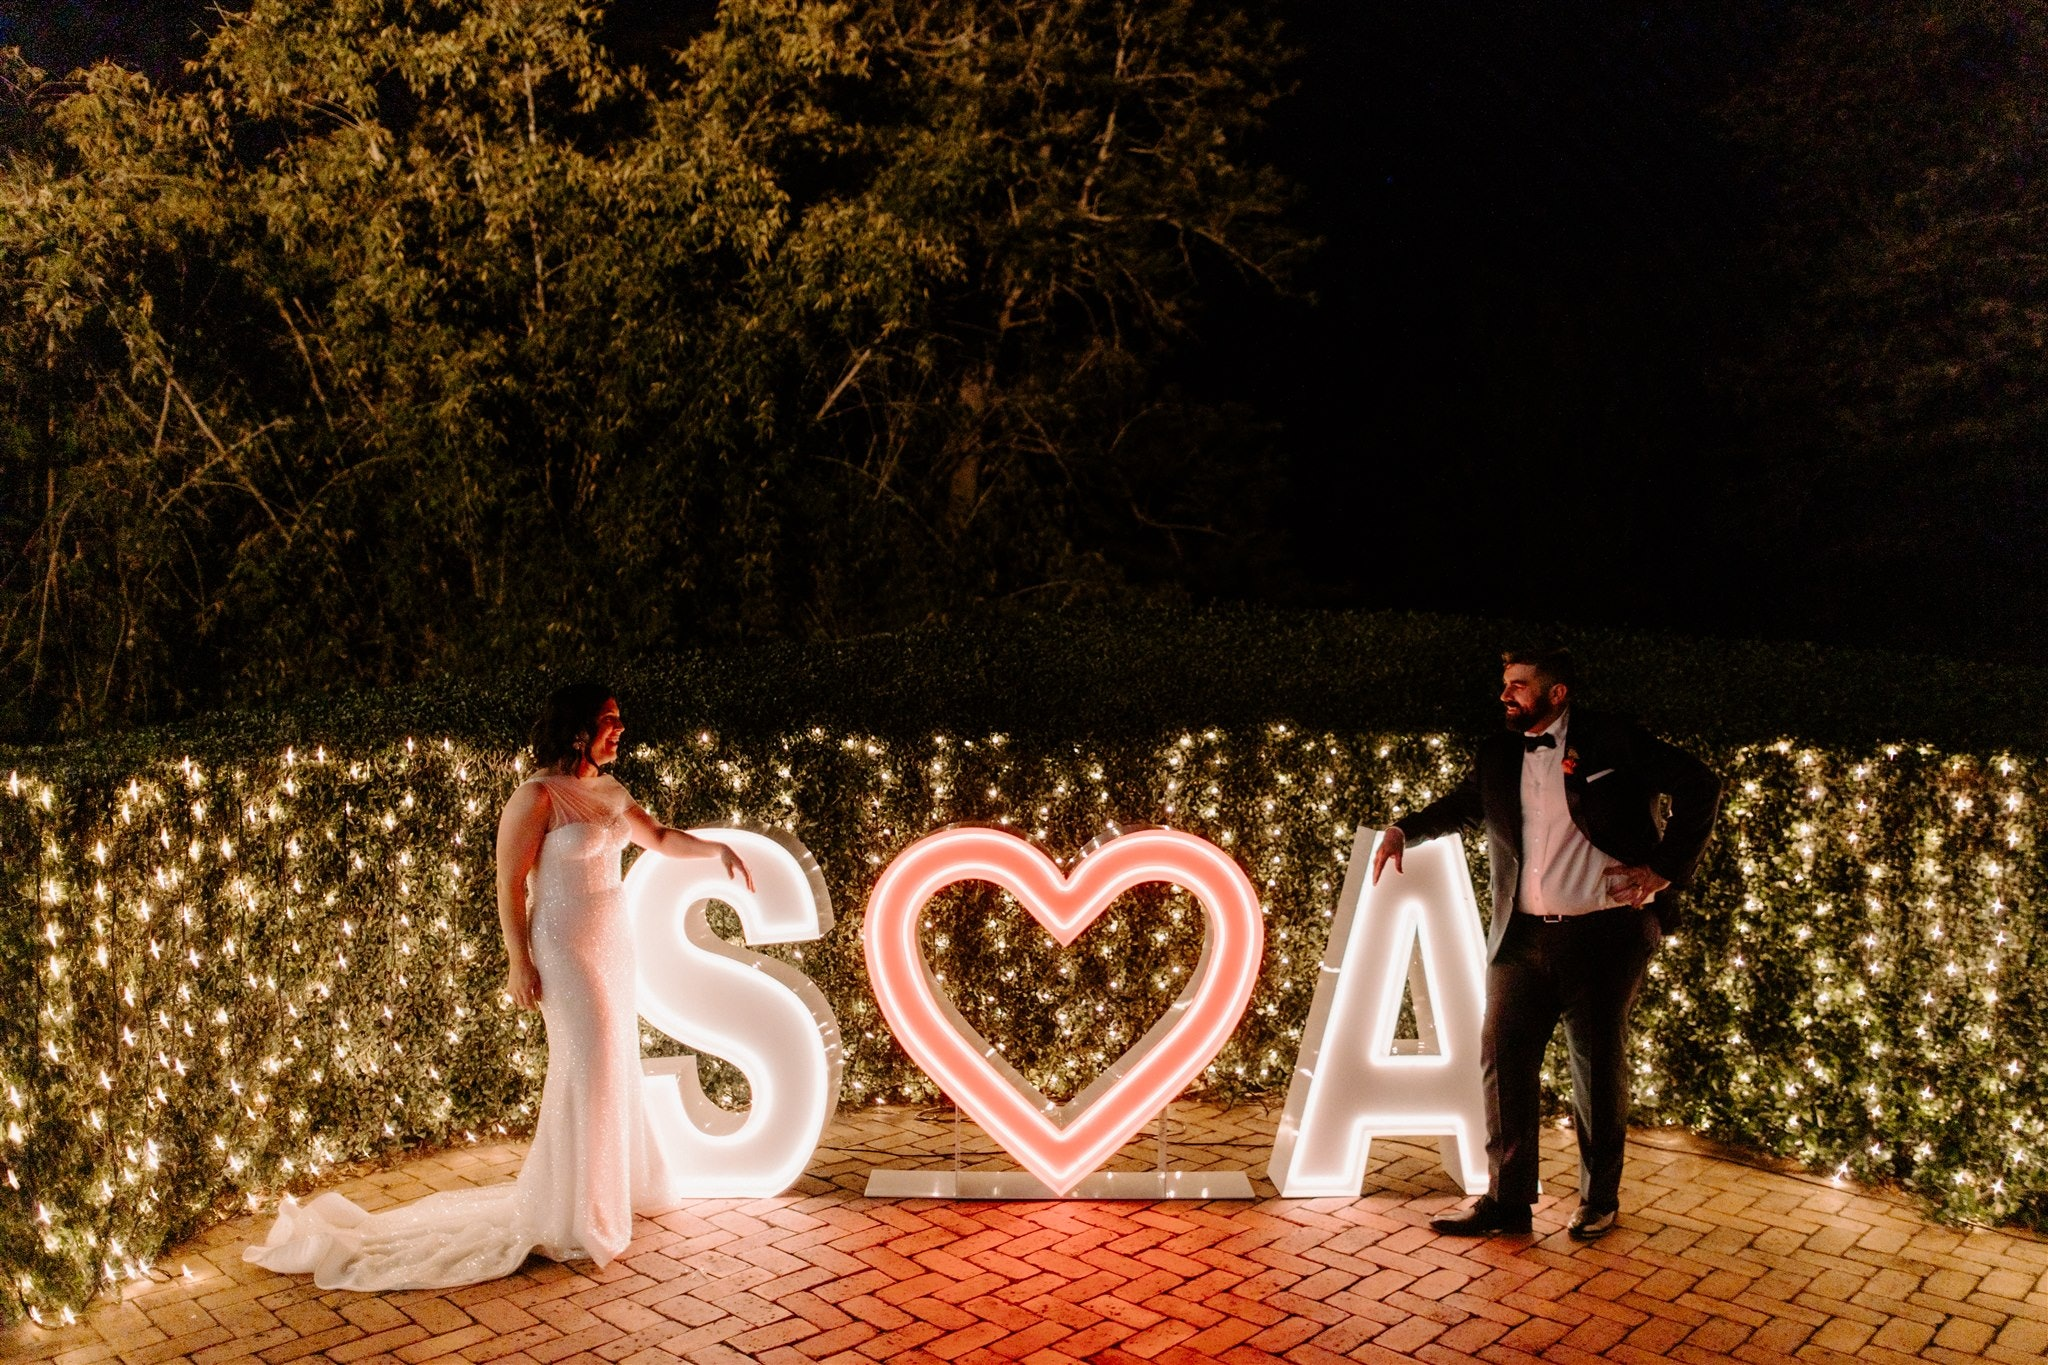 Bride and groom leaning on large neon letters